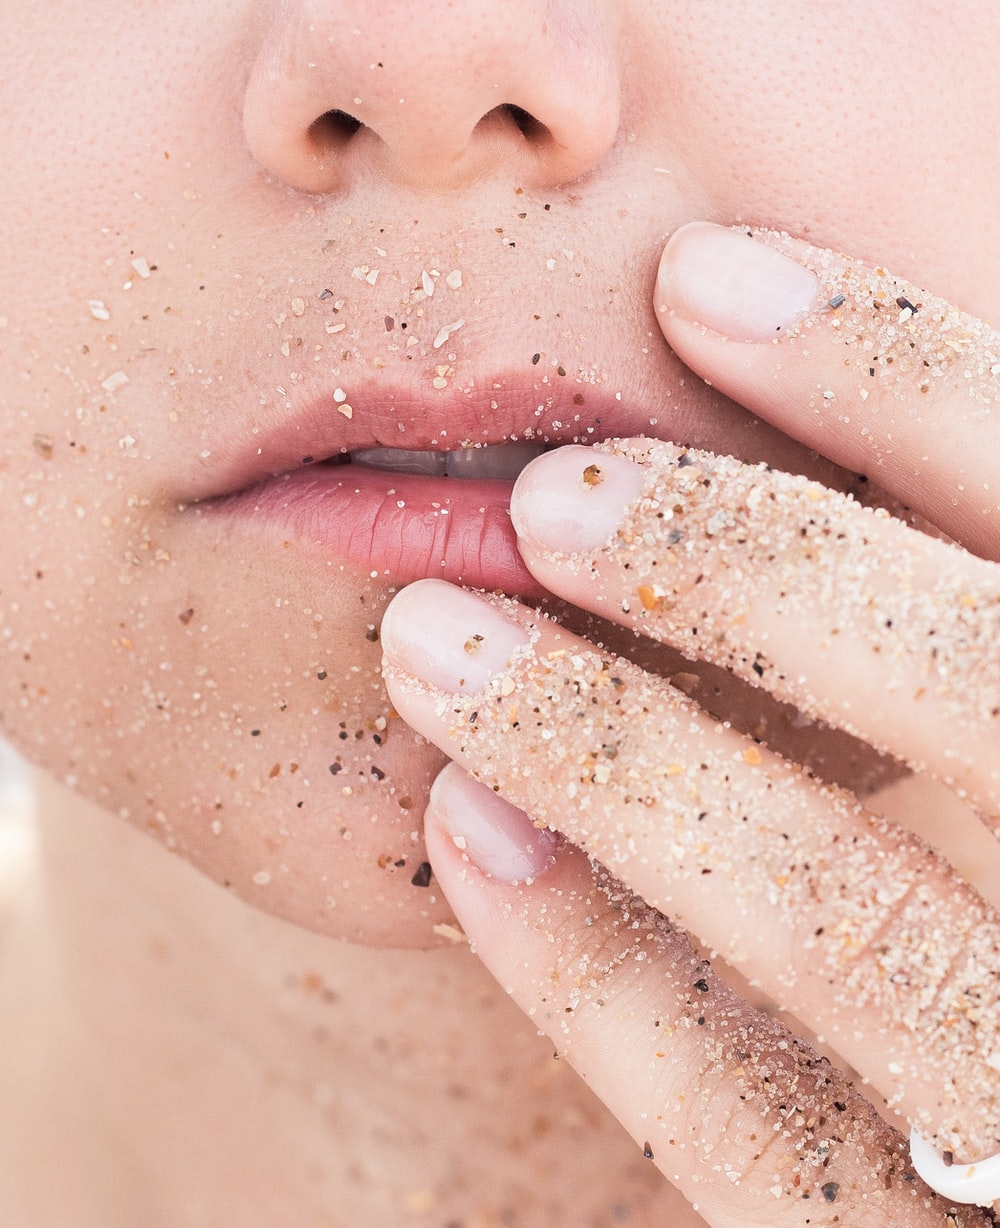 person holding lips covered in sands